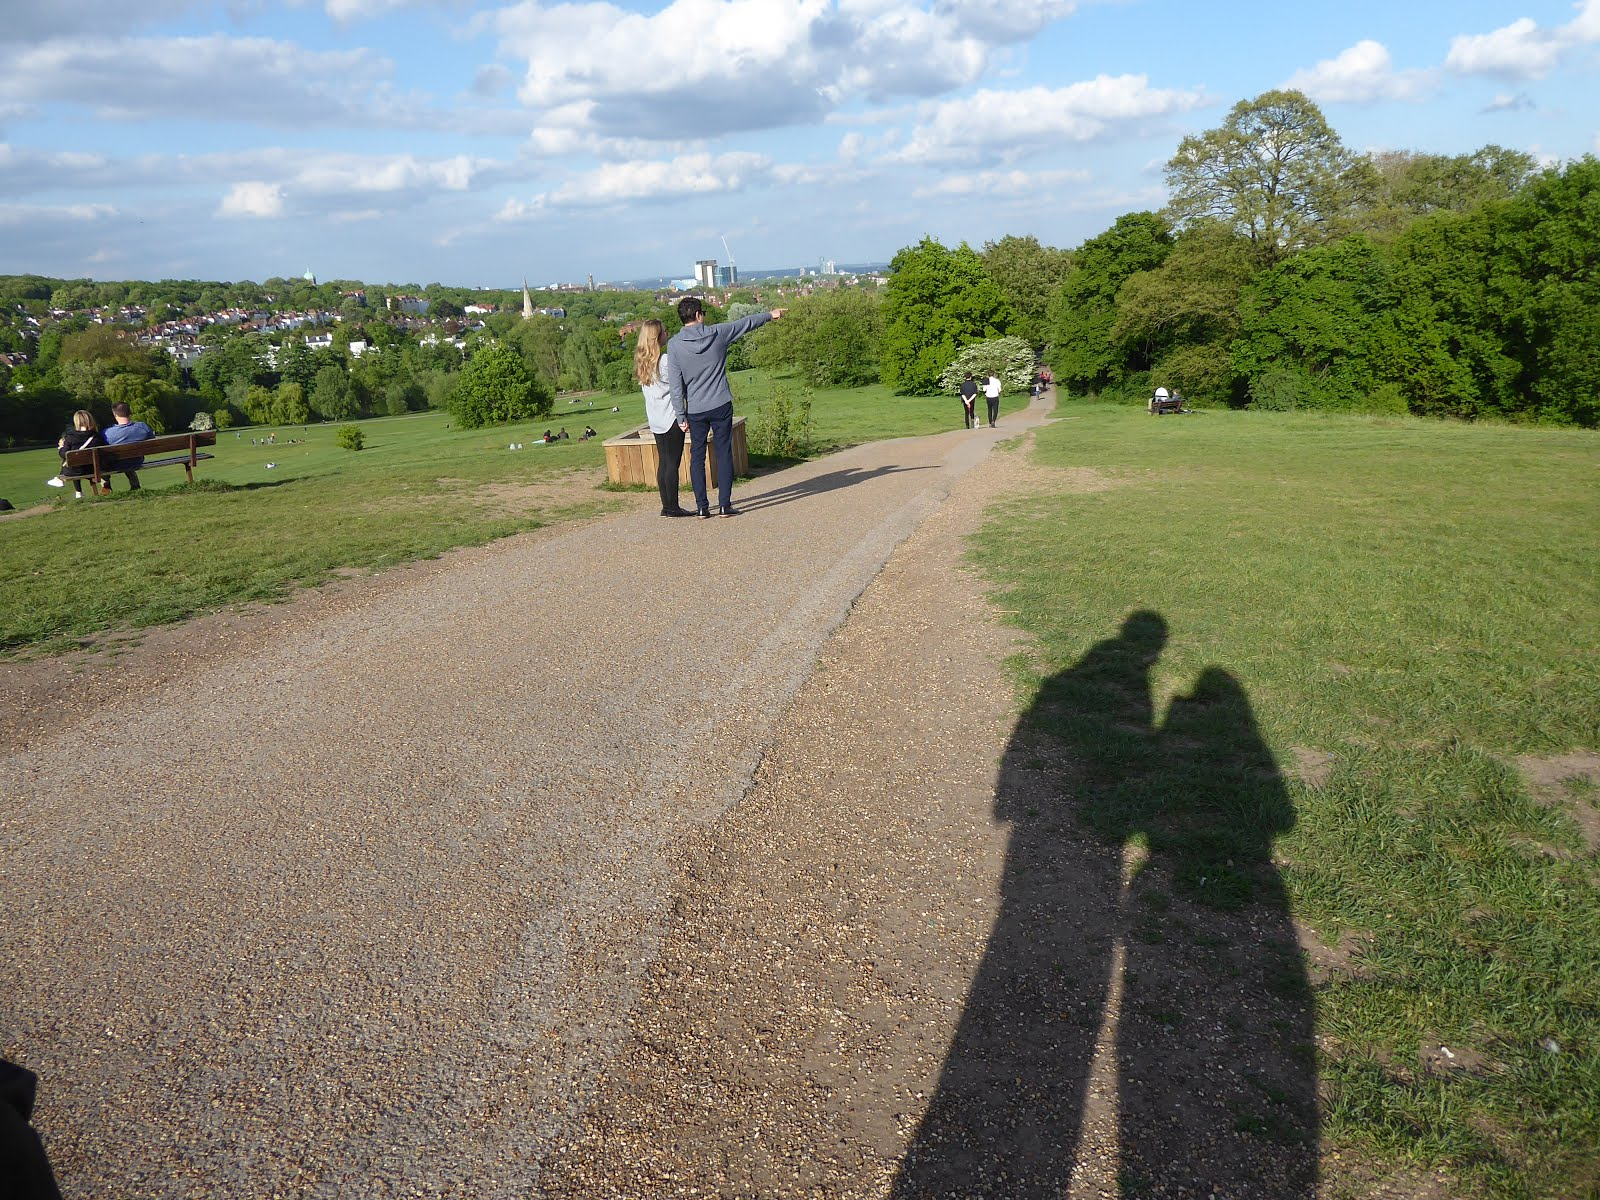 On Hampstead Heath